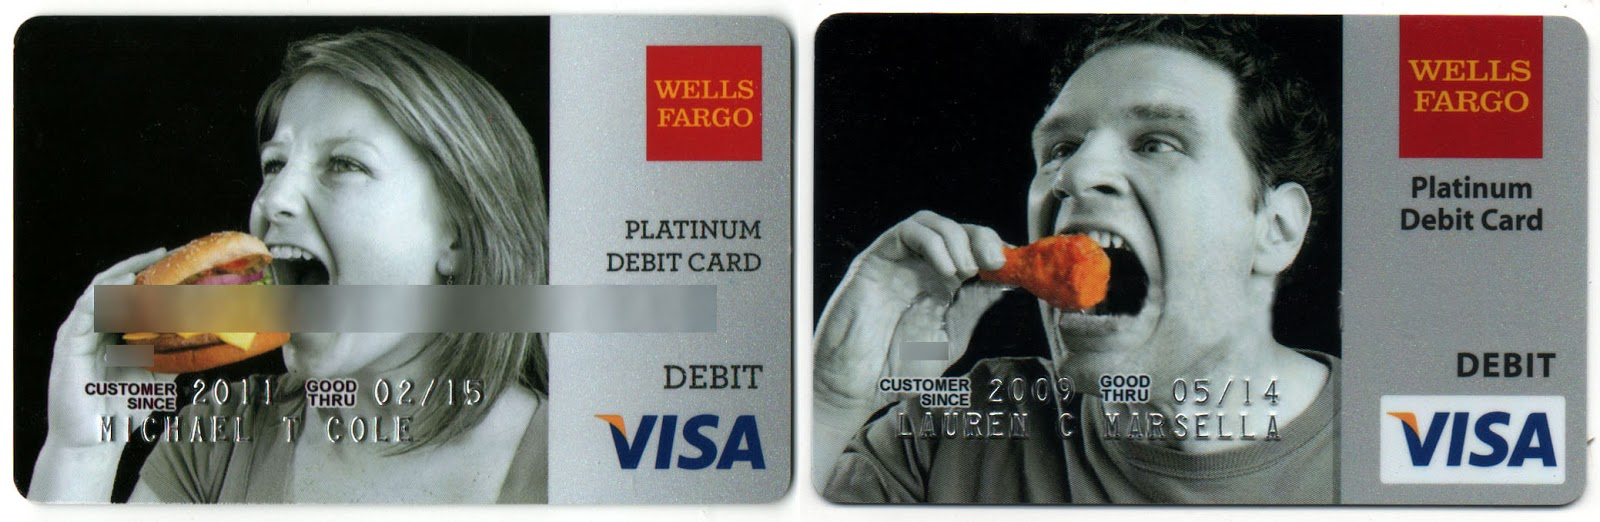 Download Activate New Wells Fargo Debit Card - tubekb